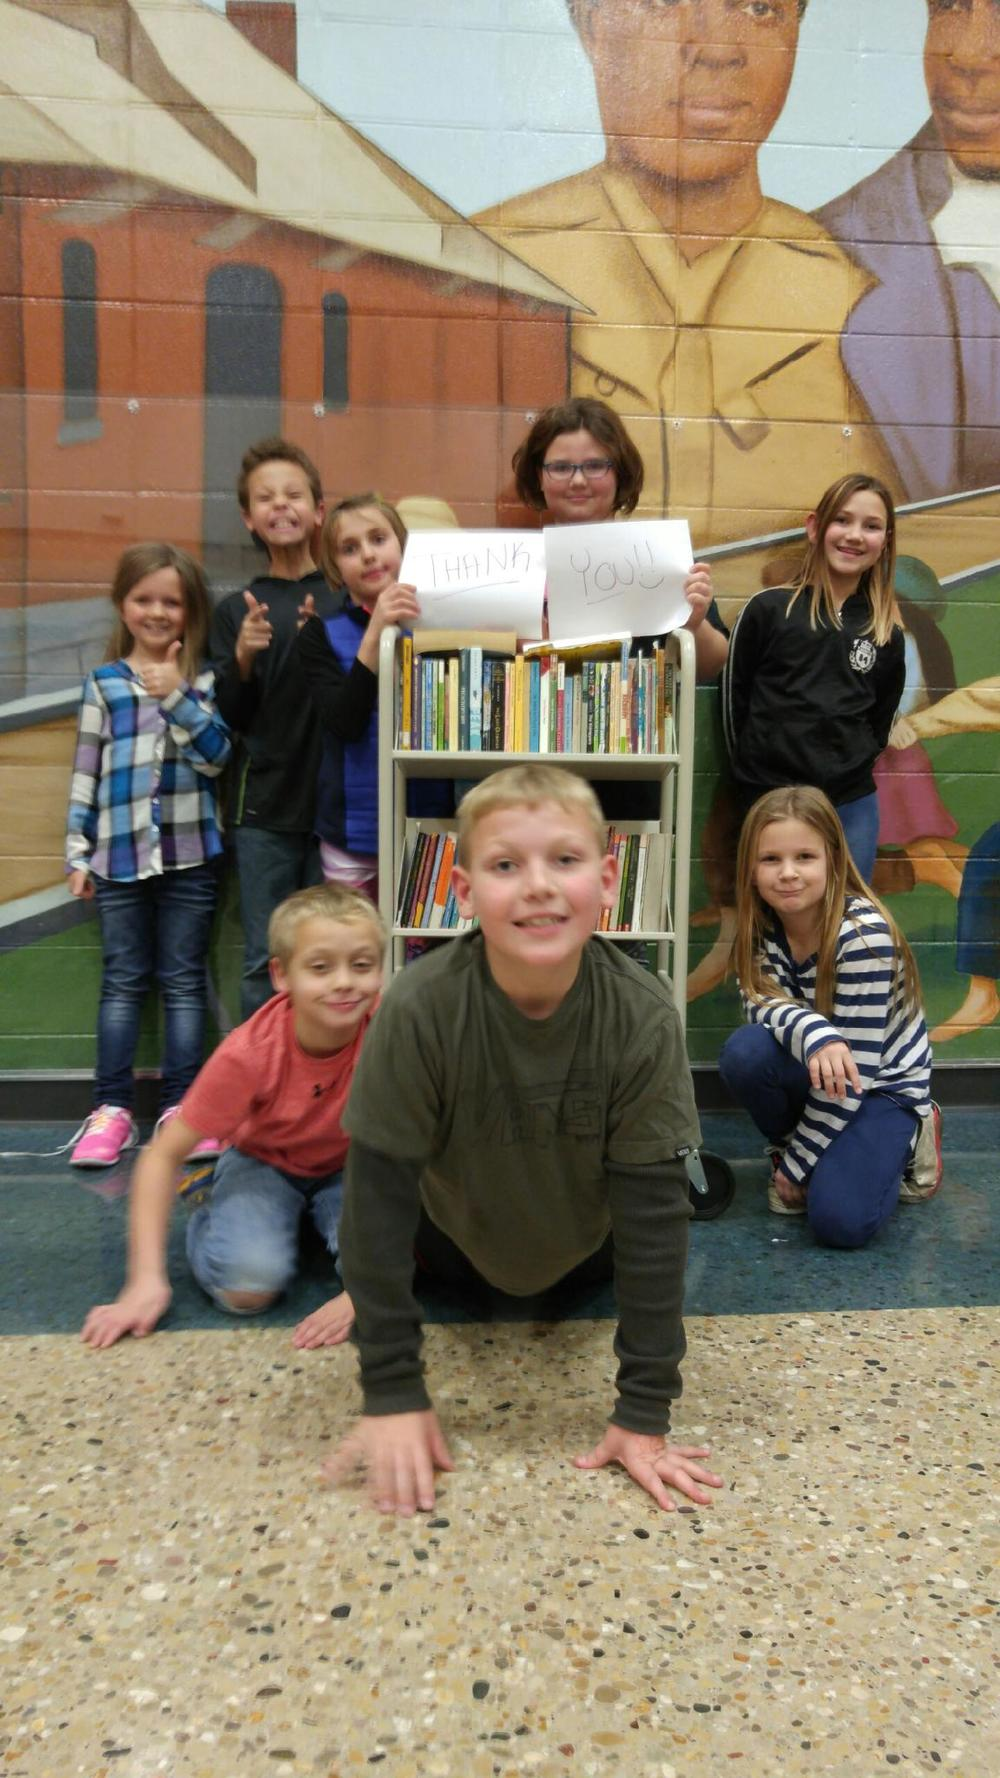 DEMCO donates book cart to Barrie Site